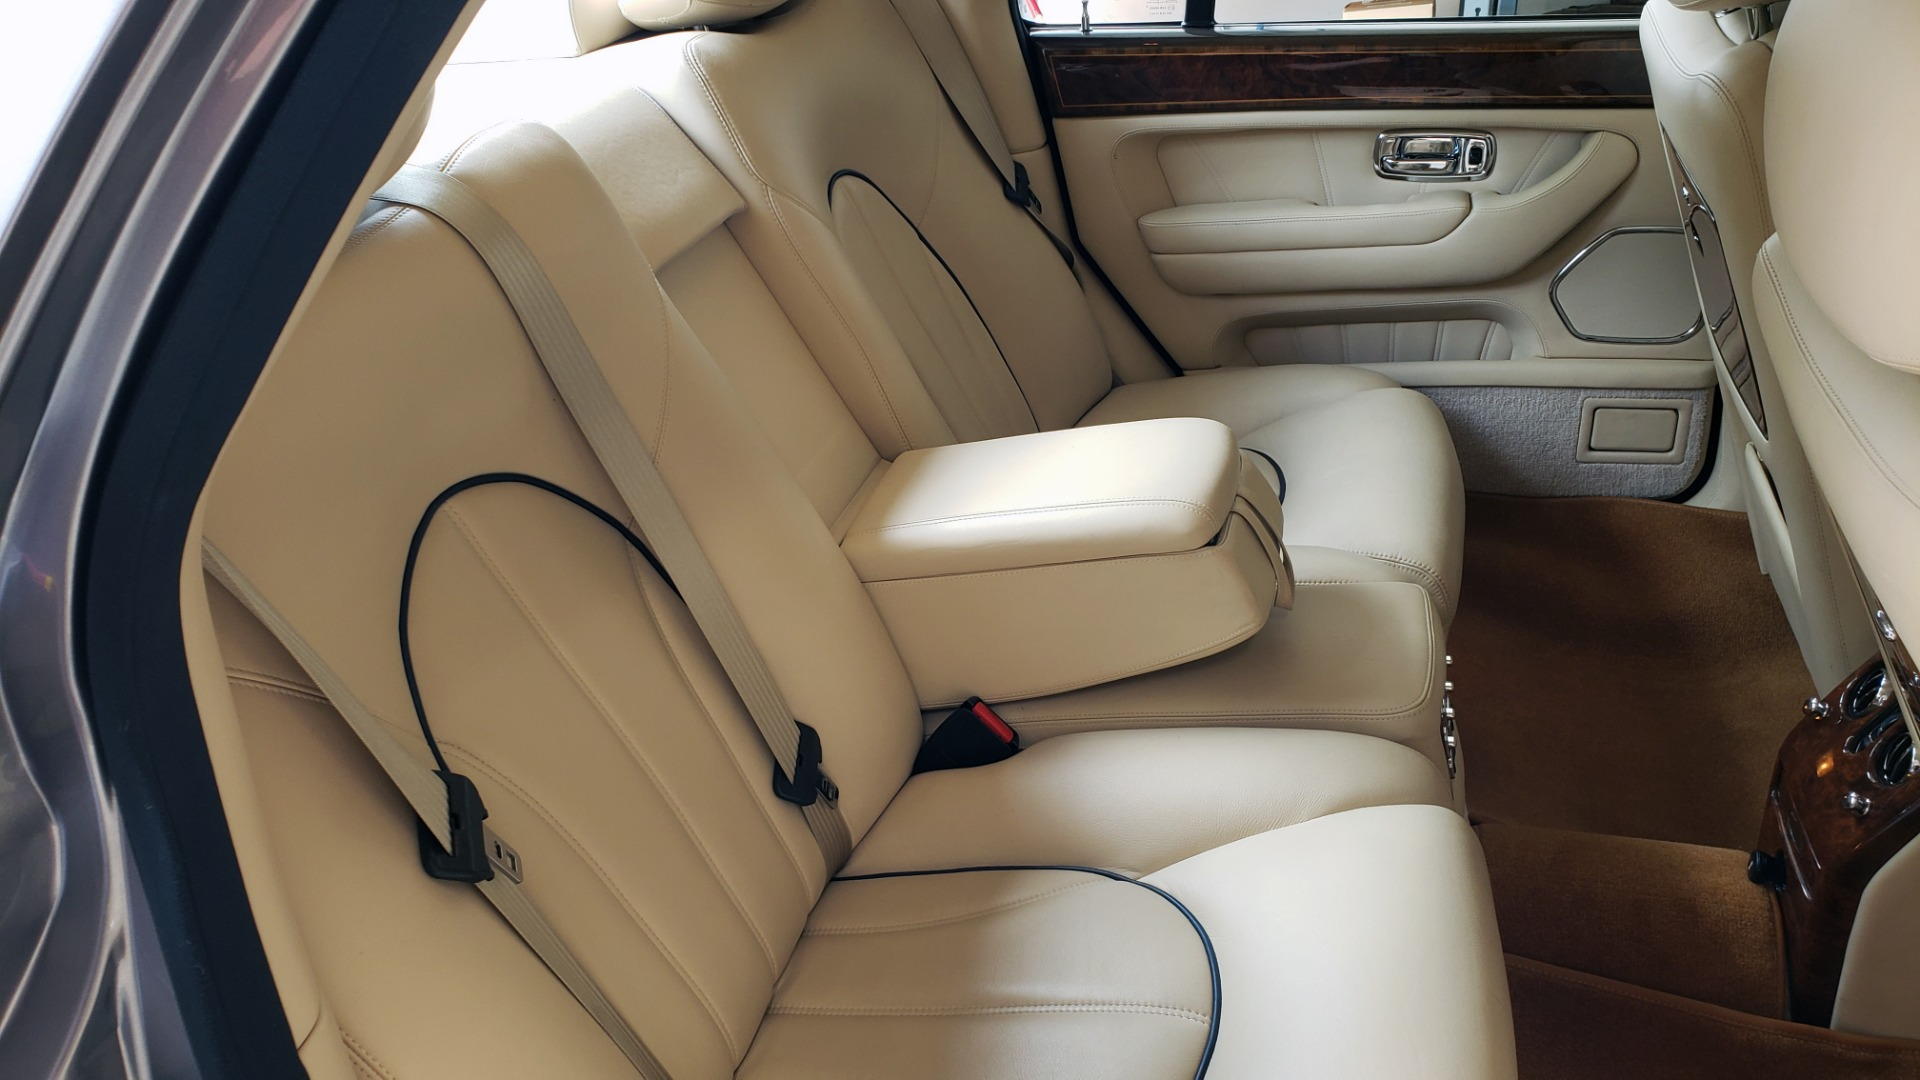 Used 1999 Rolls-Royce SILVER SERAPH 5.4L V12 / AUTO TRANS / LOW MILES / VERY CLEAN! for sale $34,999 at Formula Imports in Charlotte NC 28227 53